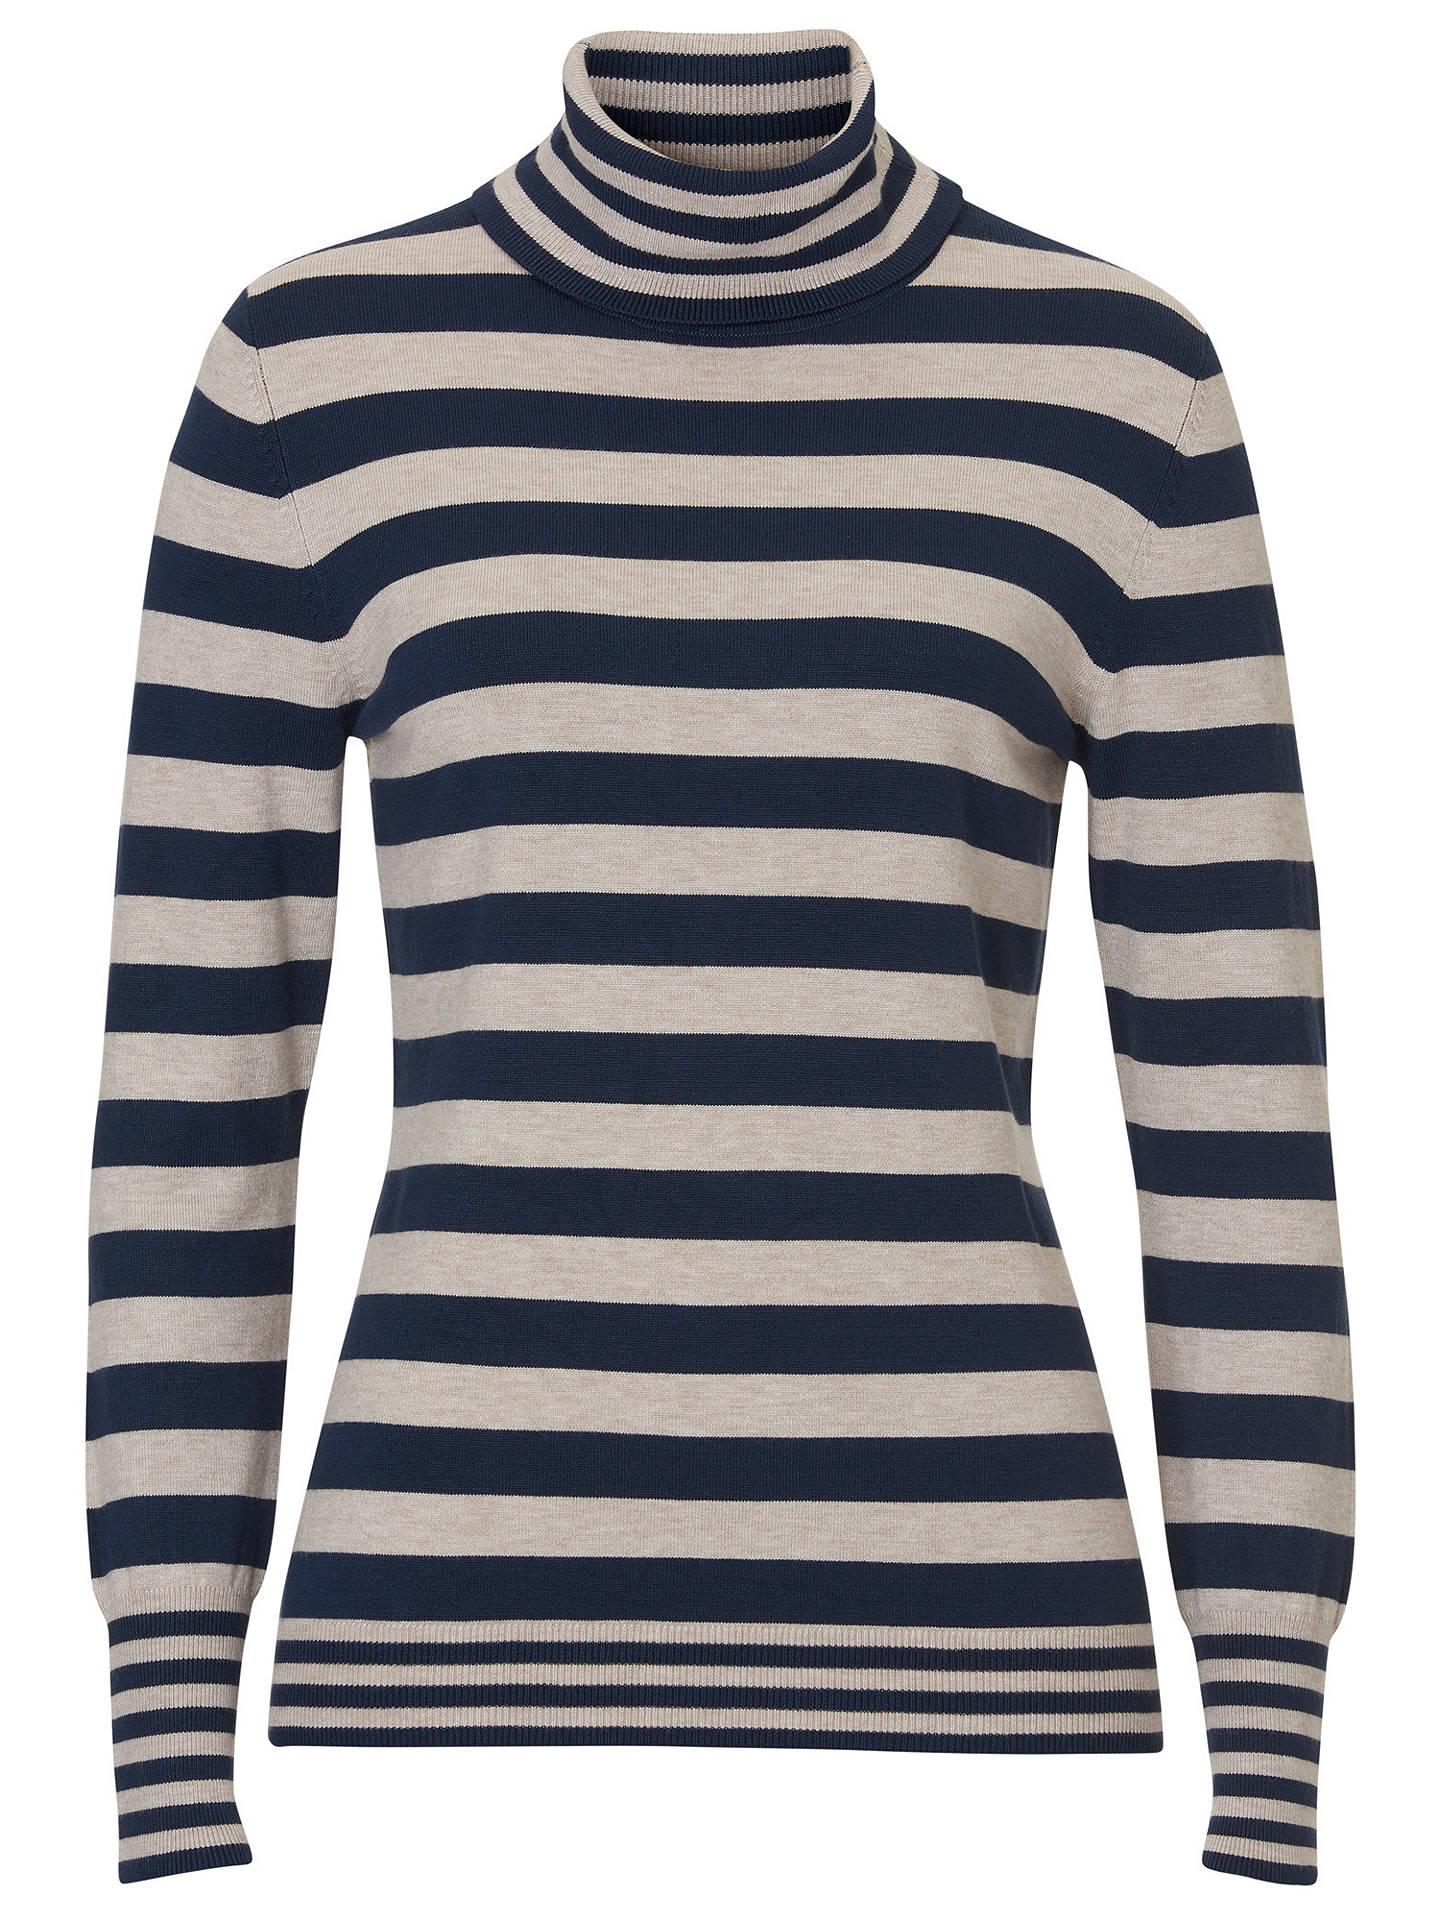 Buy Betty Barclay Roll Neck Striped Jumper, Dark Blue/Stone, 6 Online at johnlewis.com